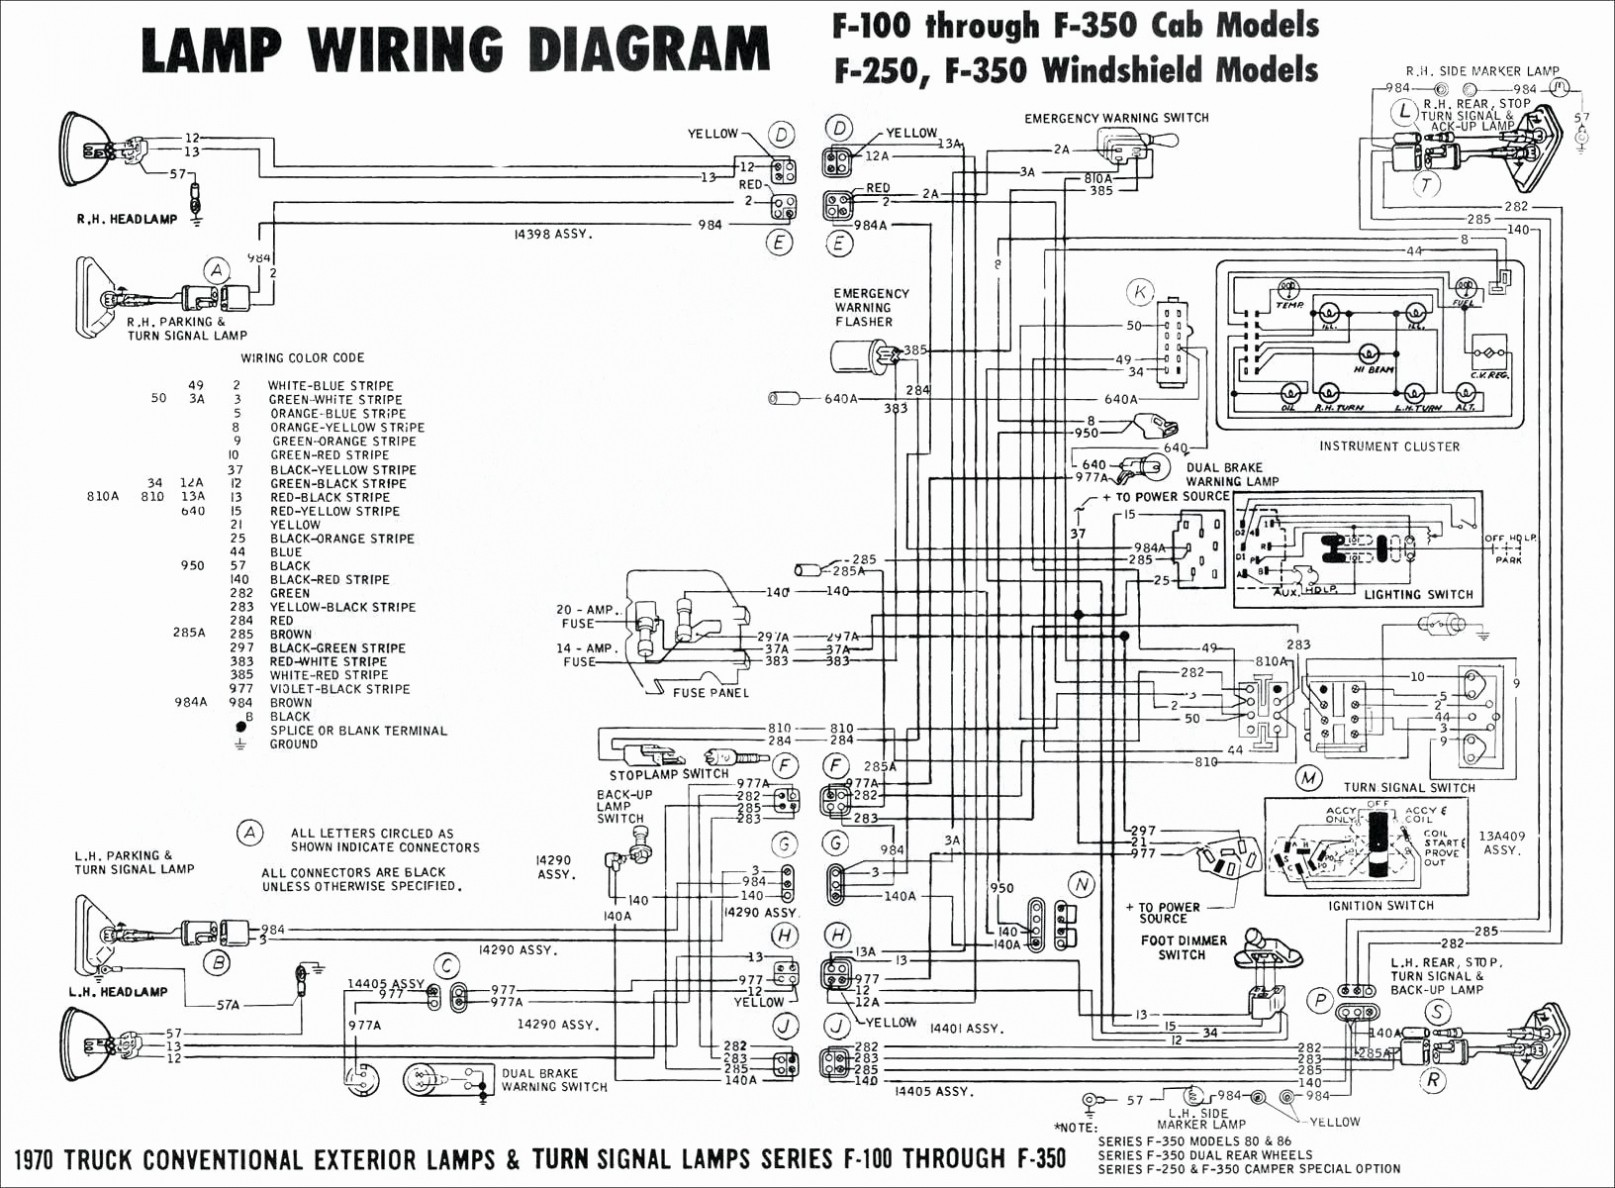 D5494 580c Case Wiring Diagram | Digital Resources on white tractor power, nissan wiring diagram, hino wiring diagram, ford wiring diagram, white tractor steering, white tractor brochure, white tractor headlight switch, hesston wiring diagram, oliver wiring diagram, alfa romeo wiring diagram, western star wiring diagram, white tractor tires,